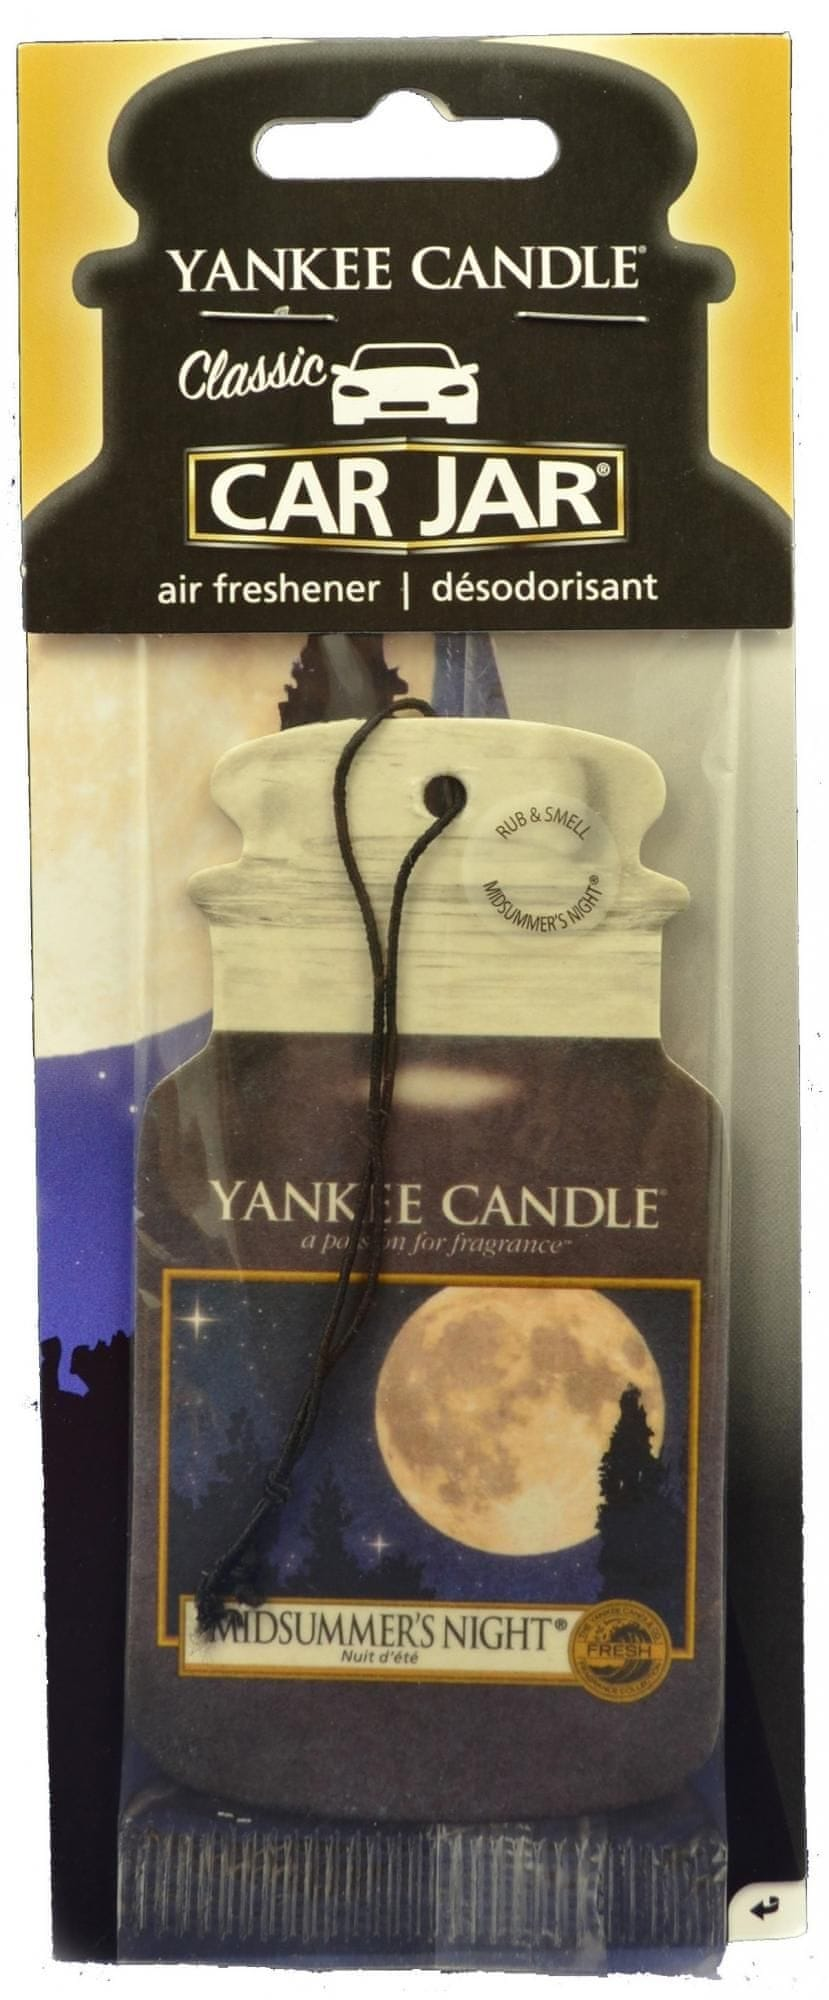 Yankee Candle Car Jar Midsummer's Night papírová visačka do auta 1 ks